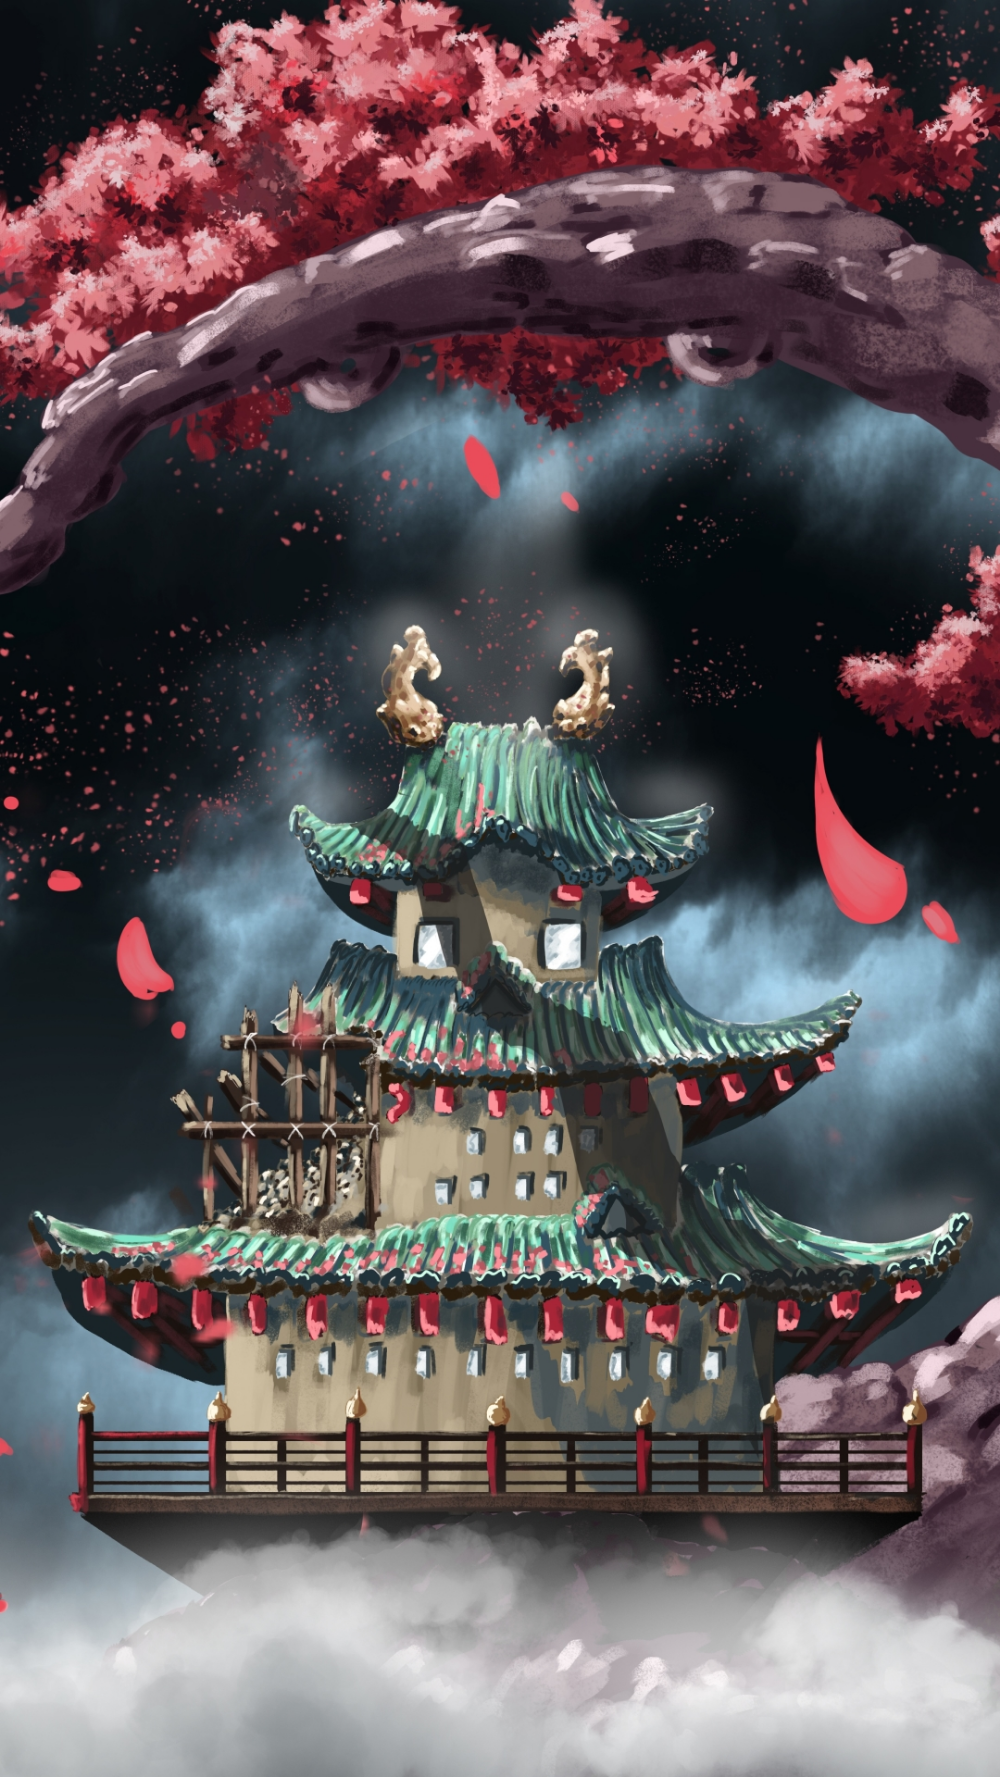 Wano Temple Anime One Piece 1080x1920 Mobile Wallpaper Anime One One Piece Manga One Piece Images